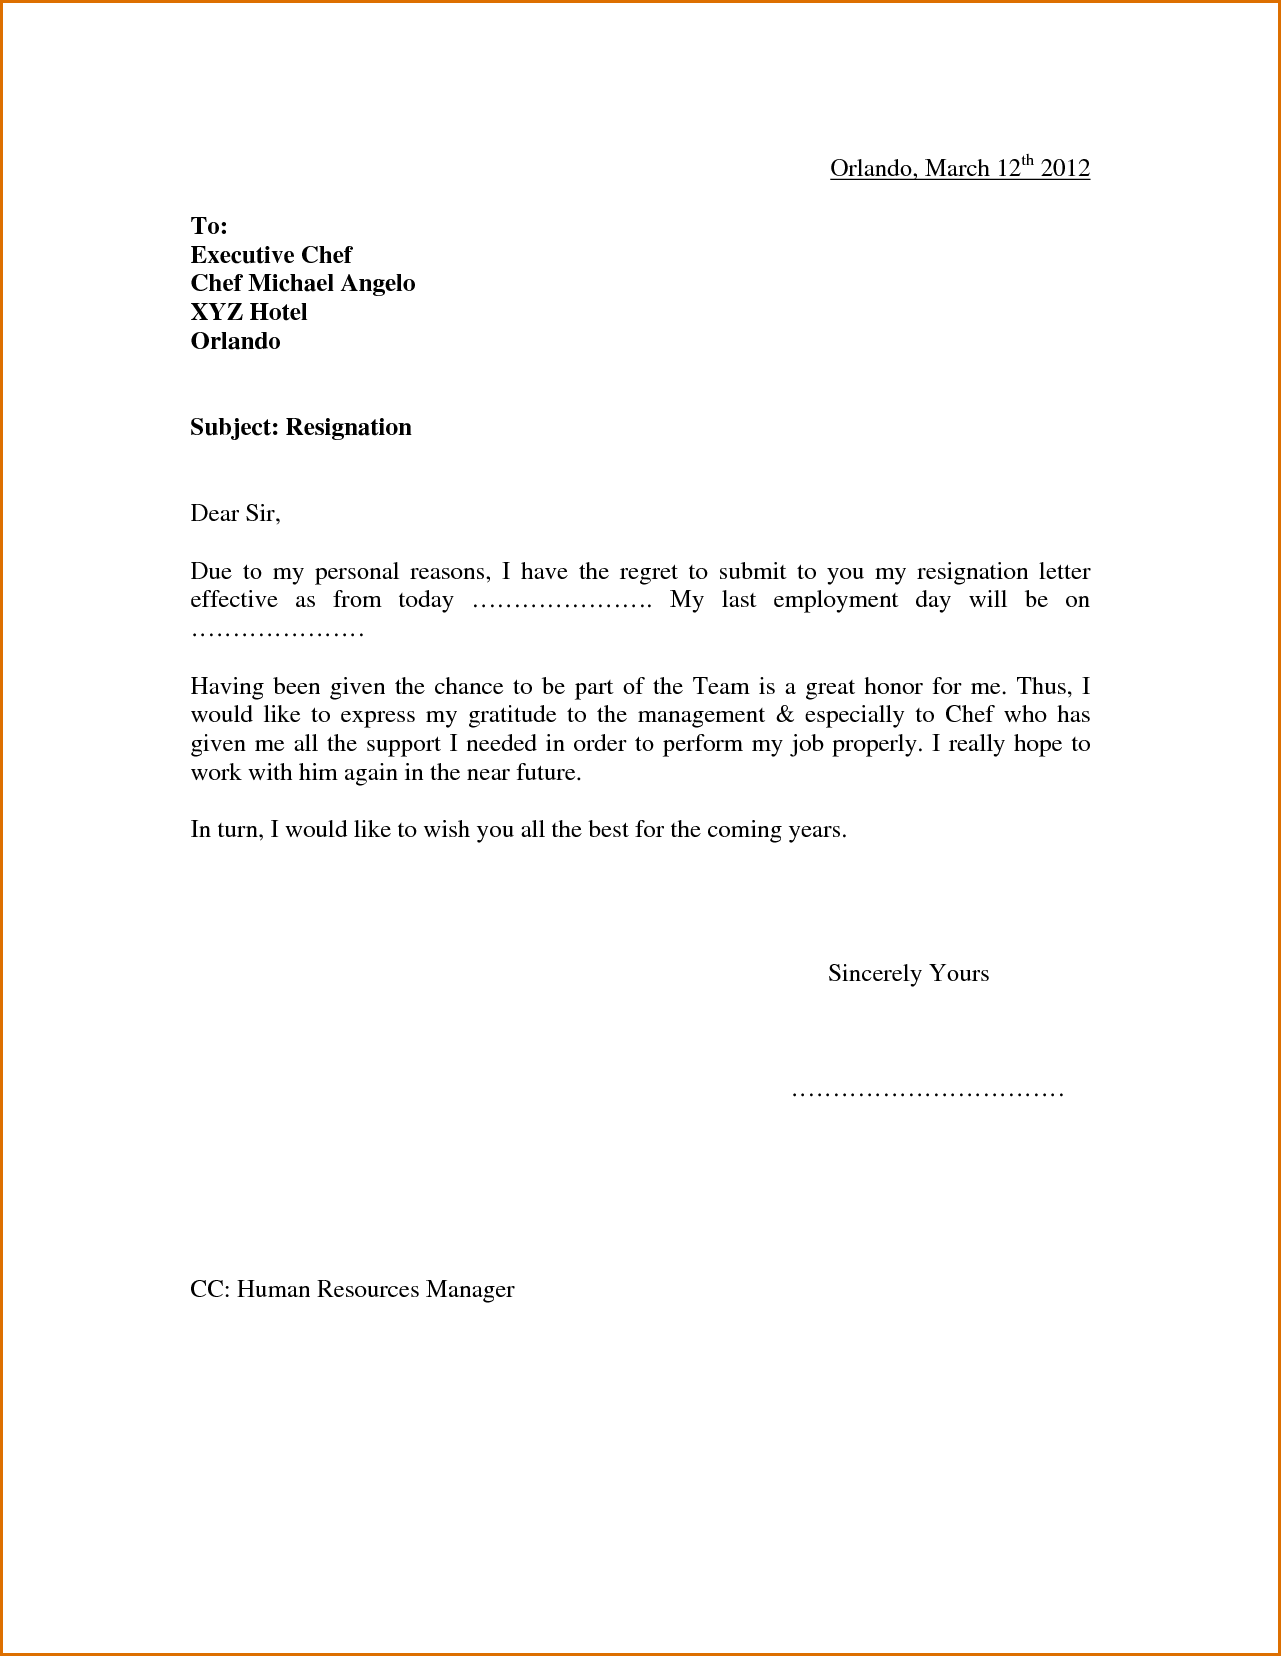 Resignation Letter Samples Resignation Letters Samples 1650 Middot 53 Kb  Middot Png Sample Resignation Letter Due